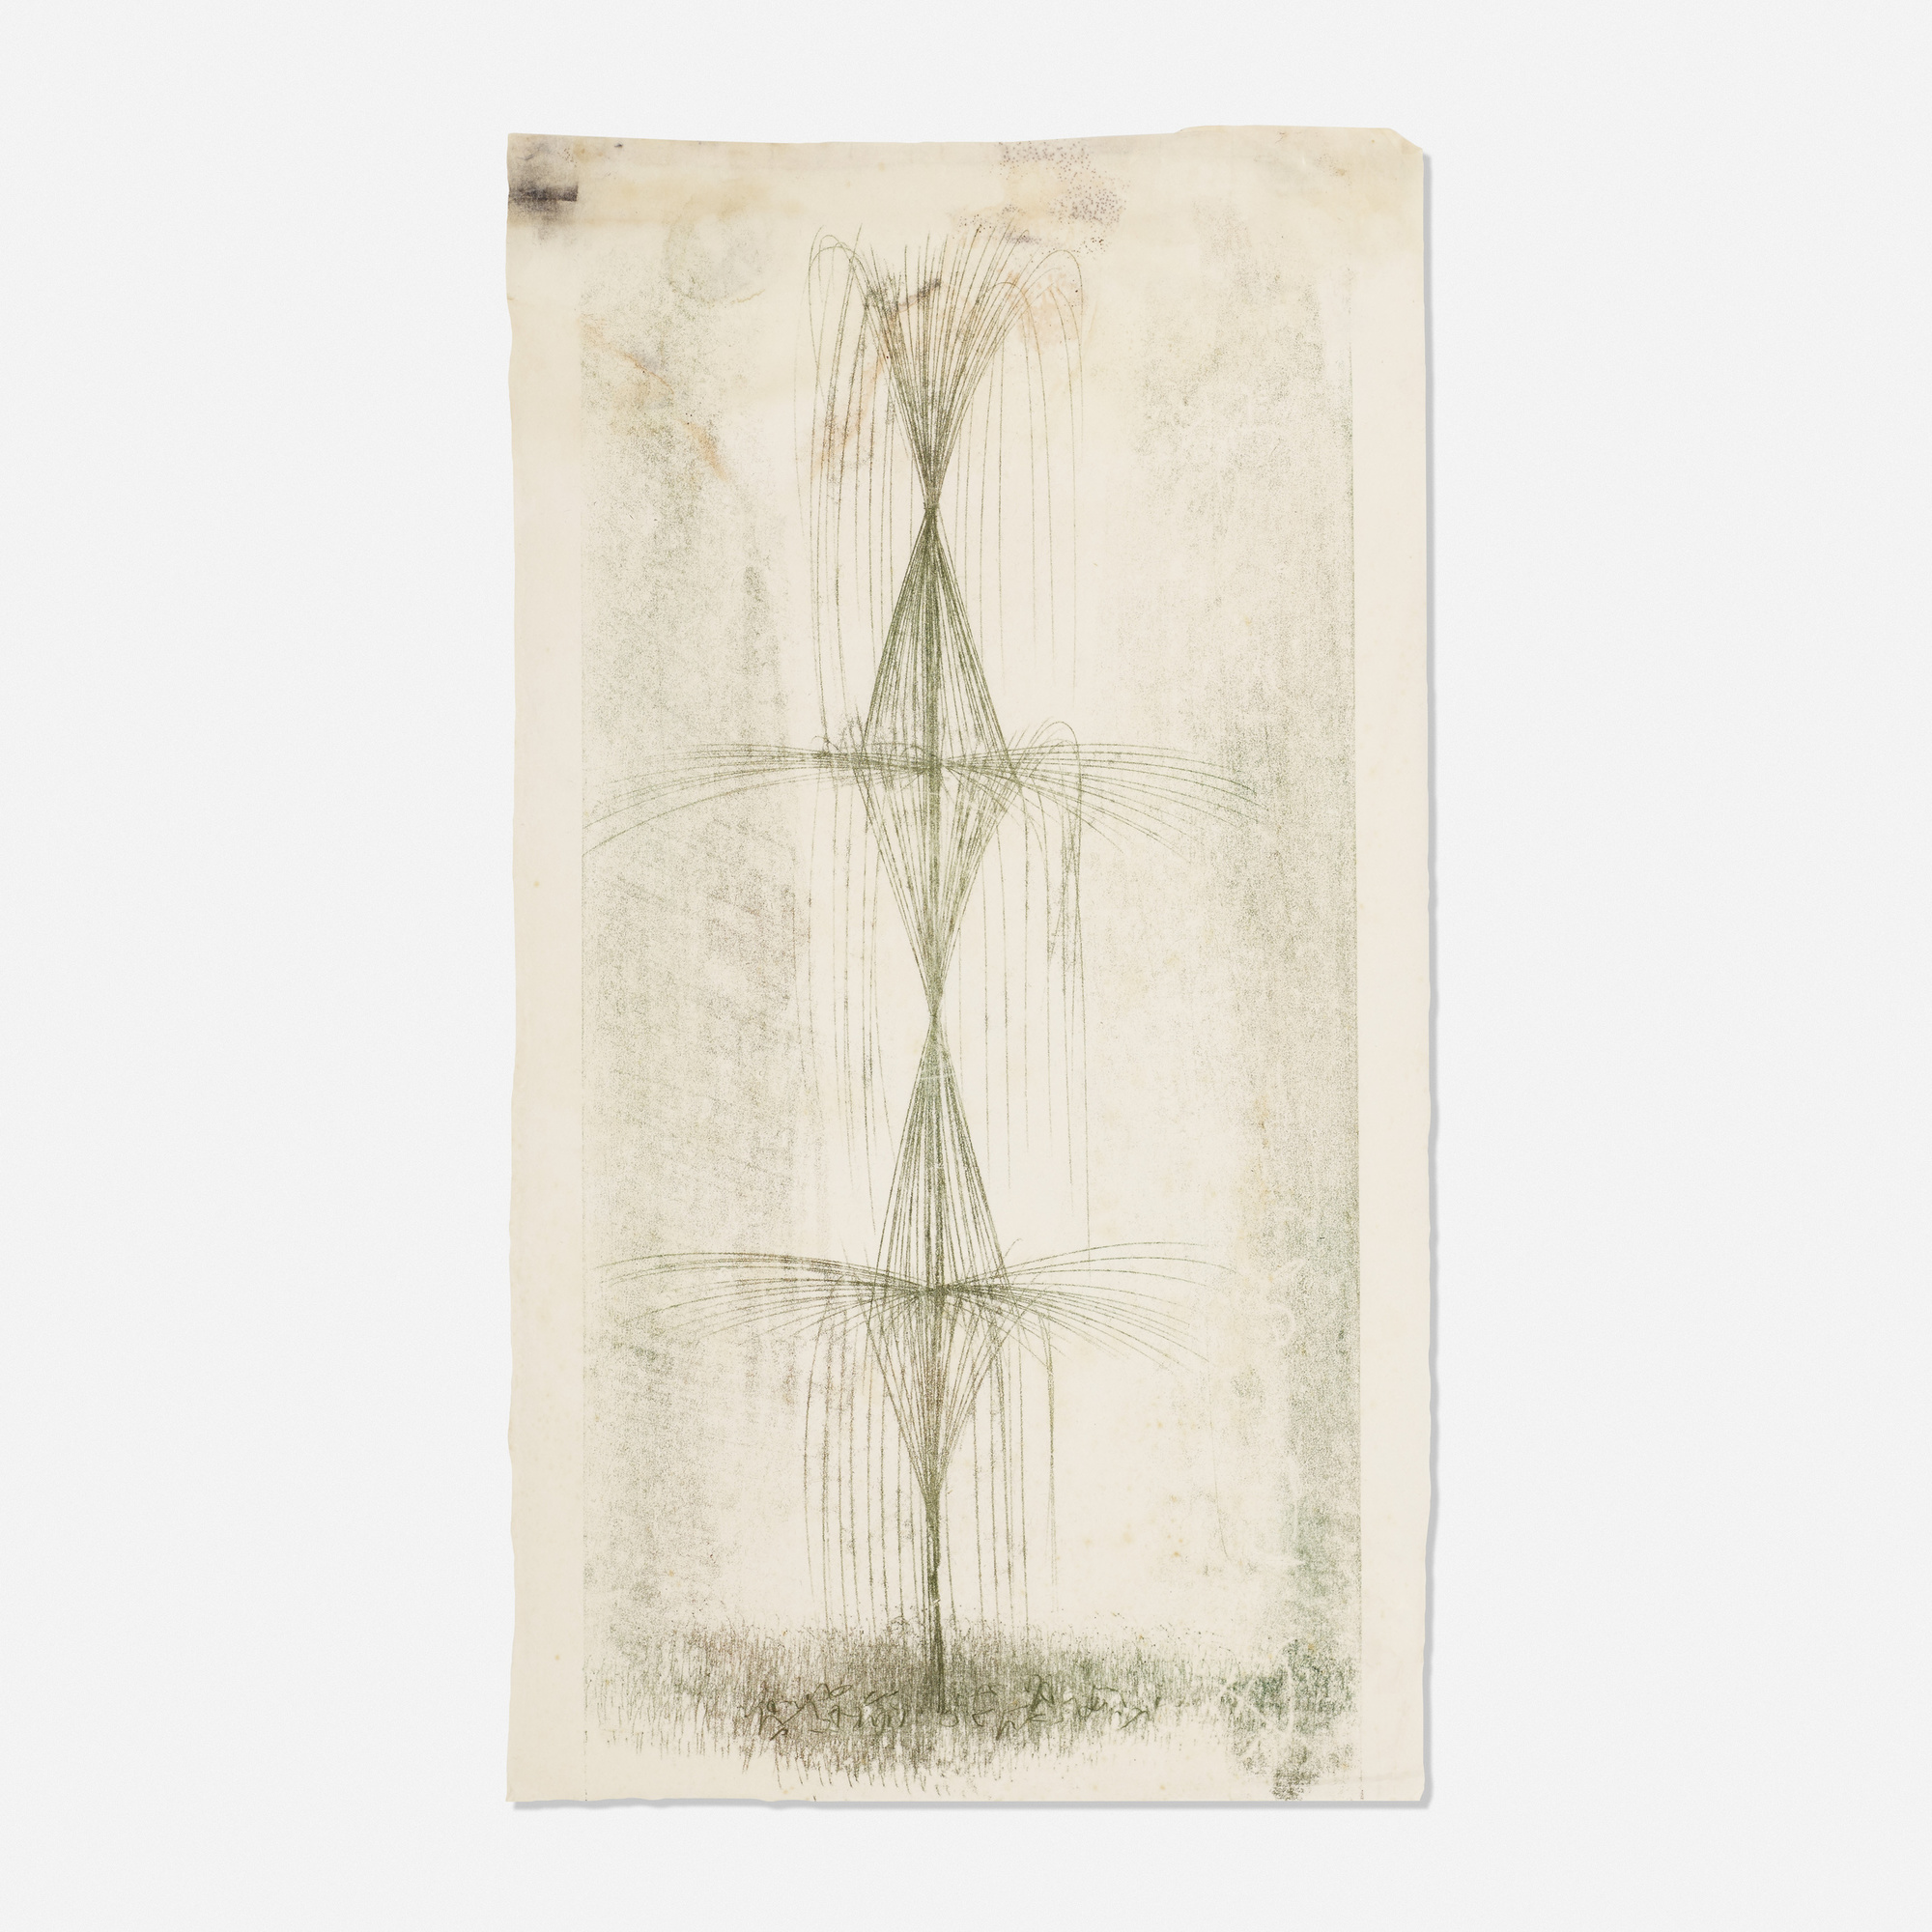 391: Harry Bertoia / Untitled (study for the Standard Oil commission) (1 of 1)